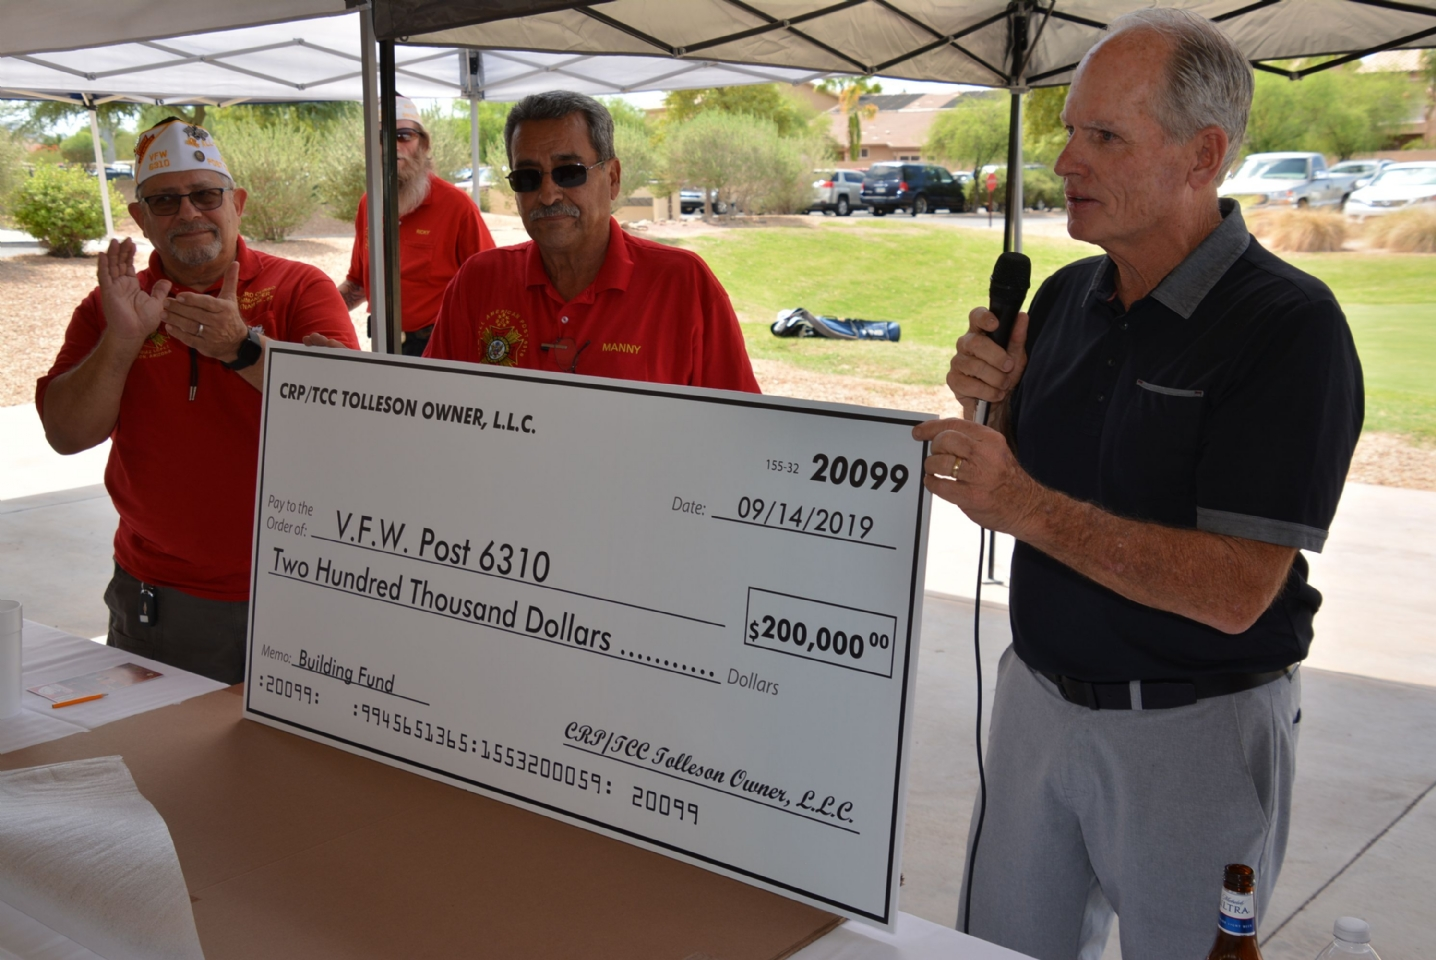 9/14/19 - TRAMMEL CROW DONATION TO BUILDING FUND